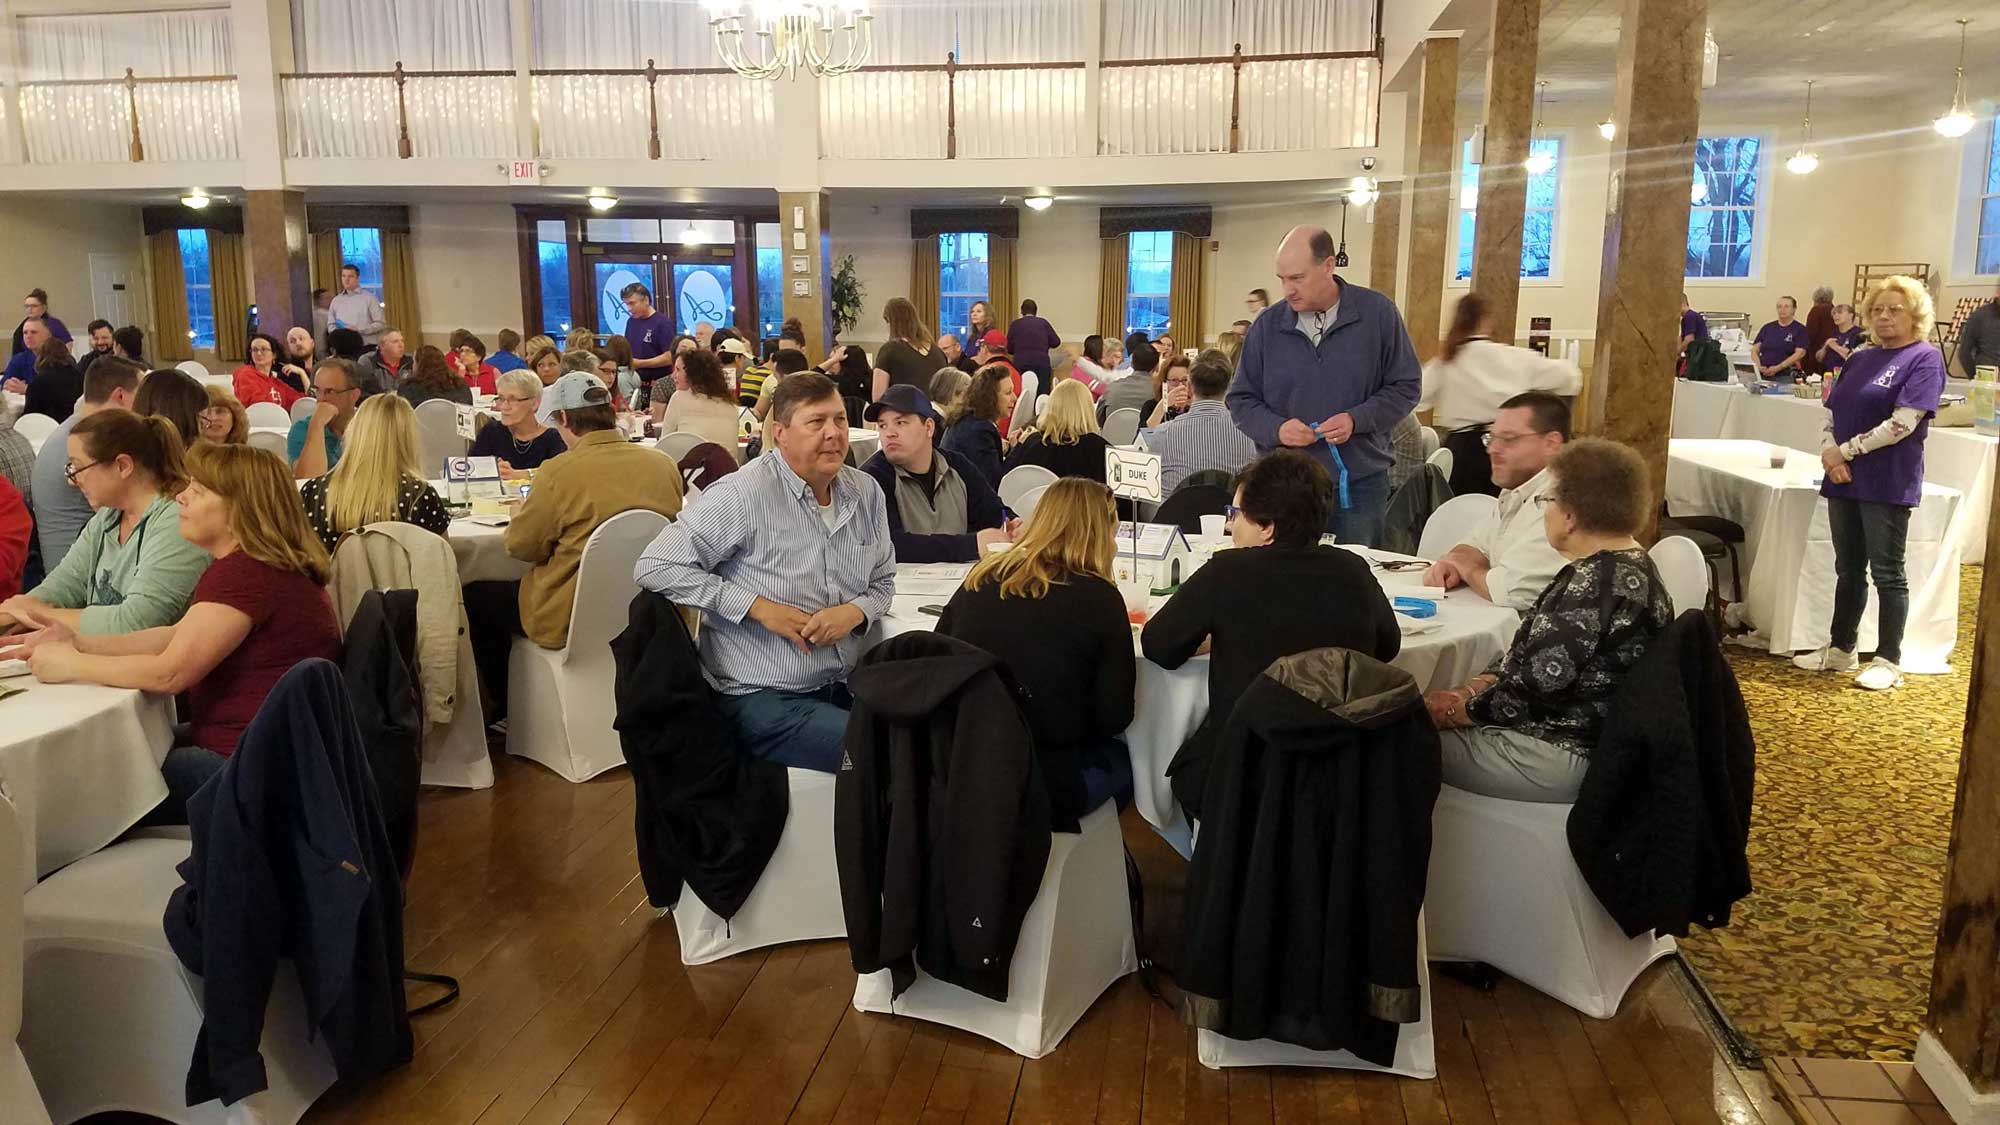 2019 - Trivia Night Fundraiser crowd